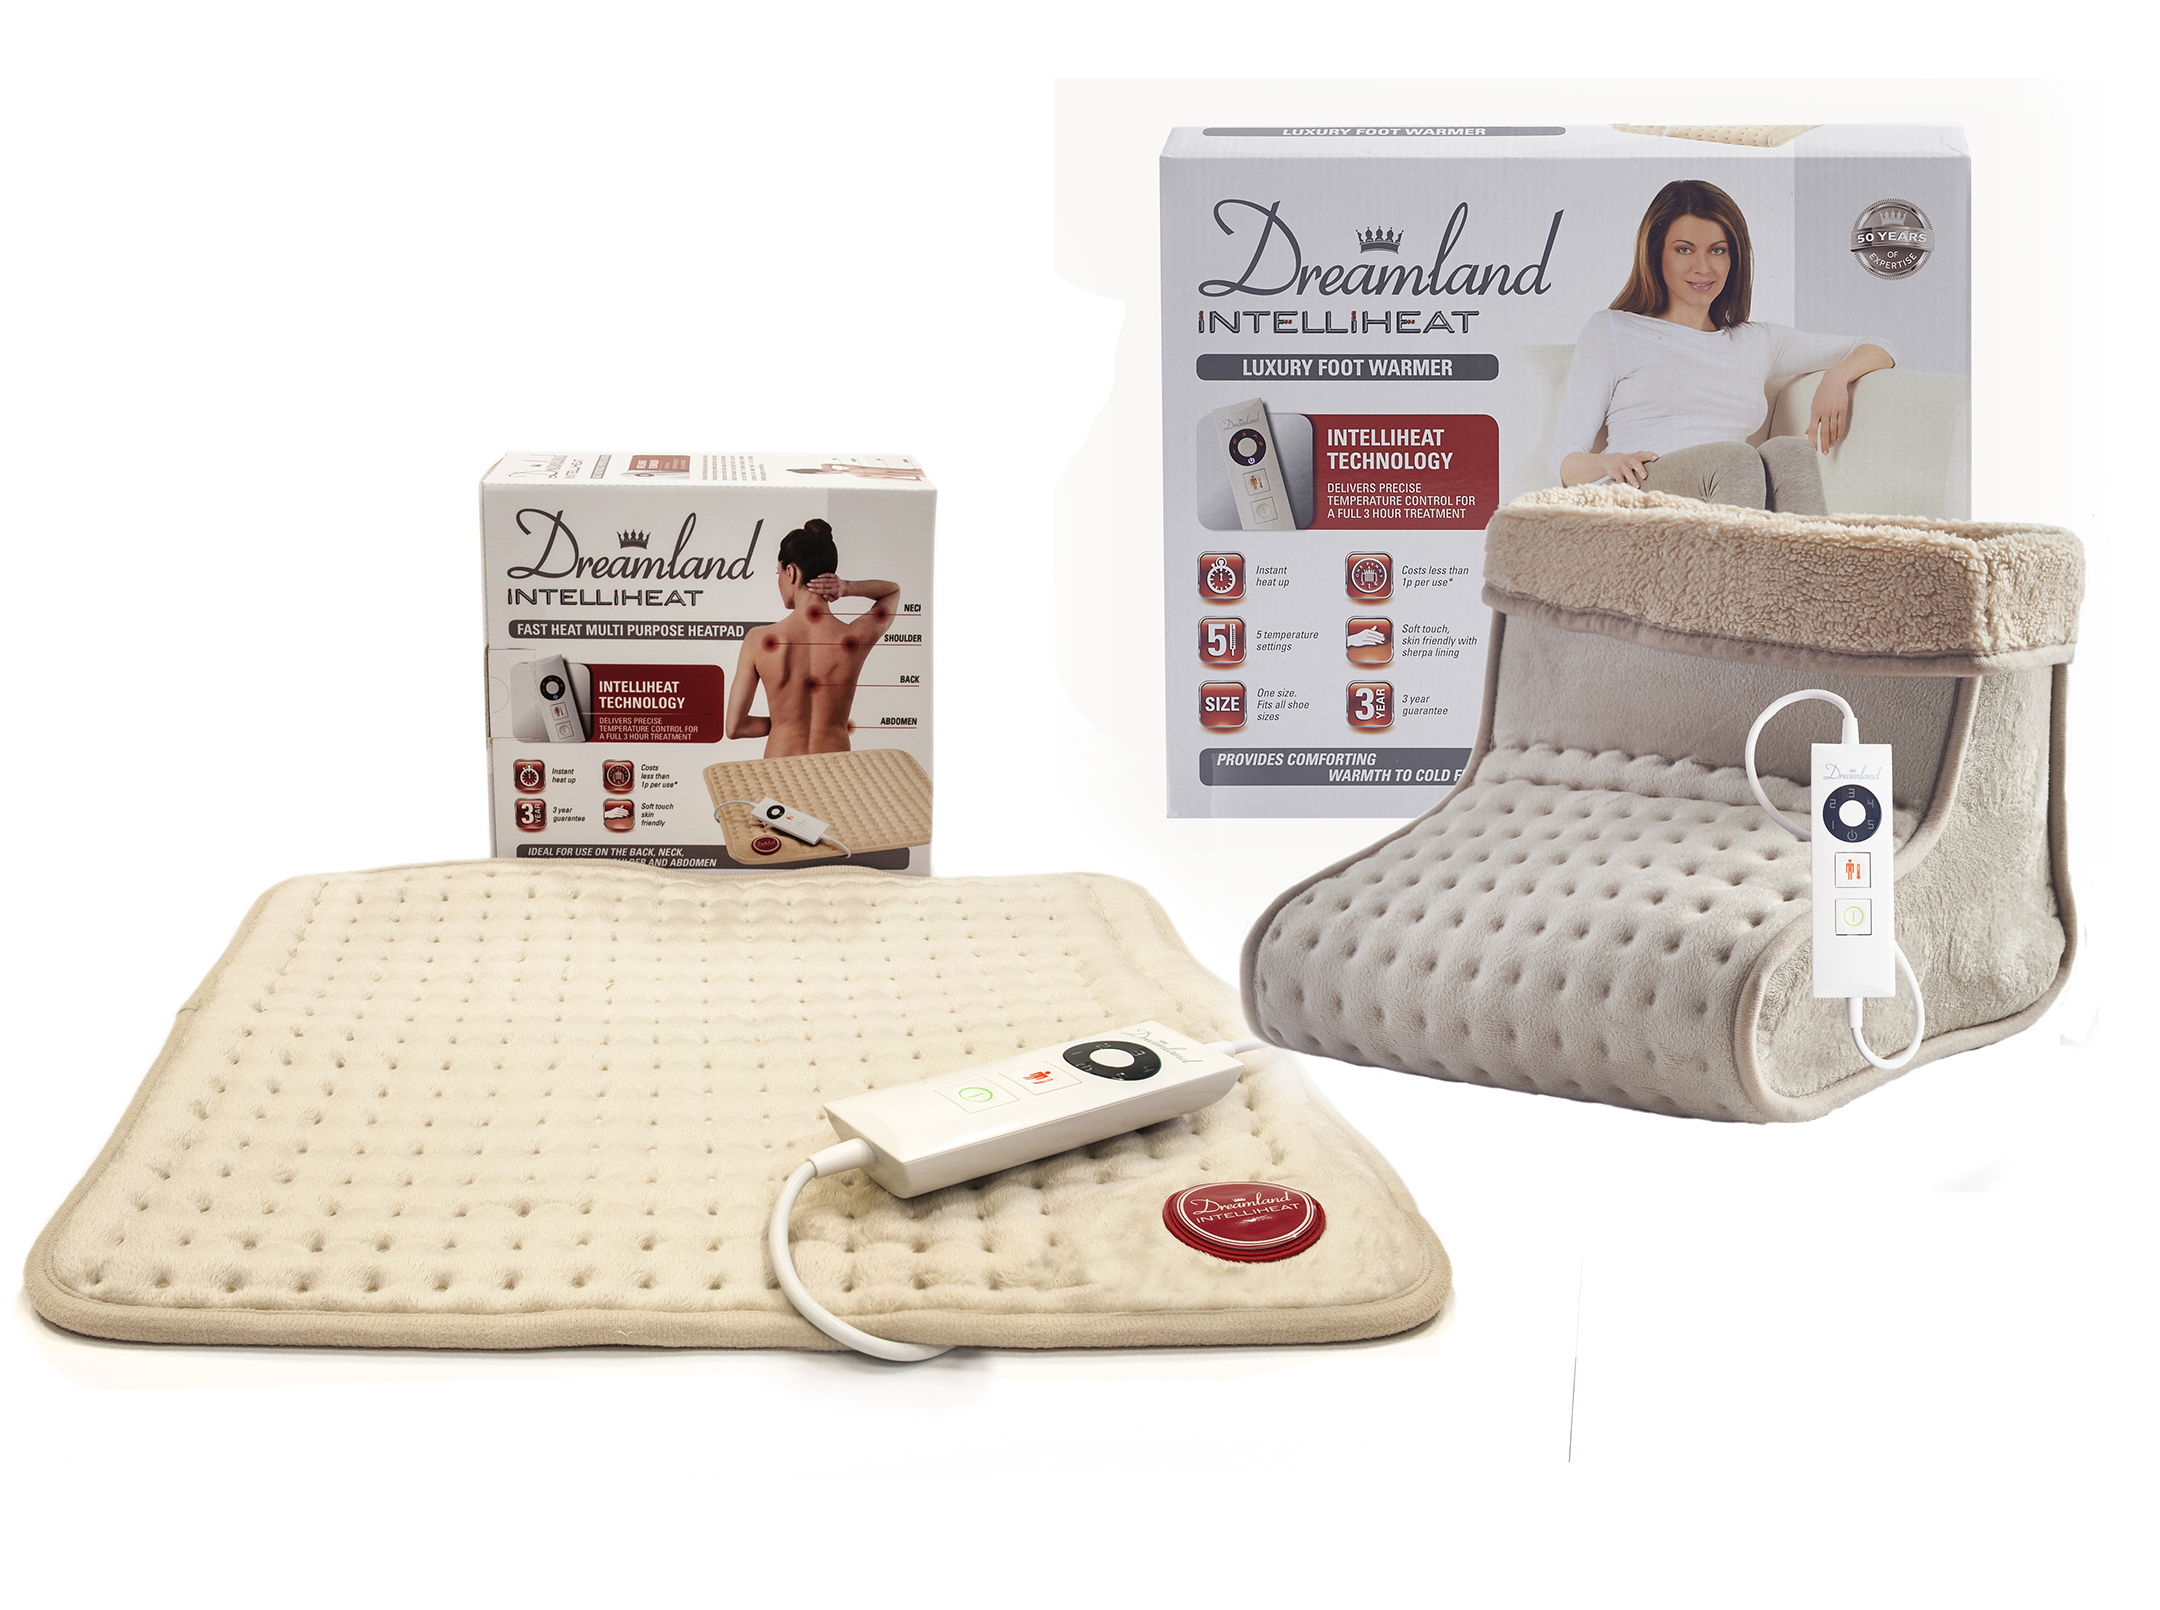 56032ad7a5 Dreamland Intelliheat Heatpad and Foot warmer review — Yours